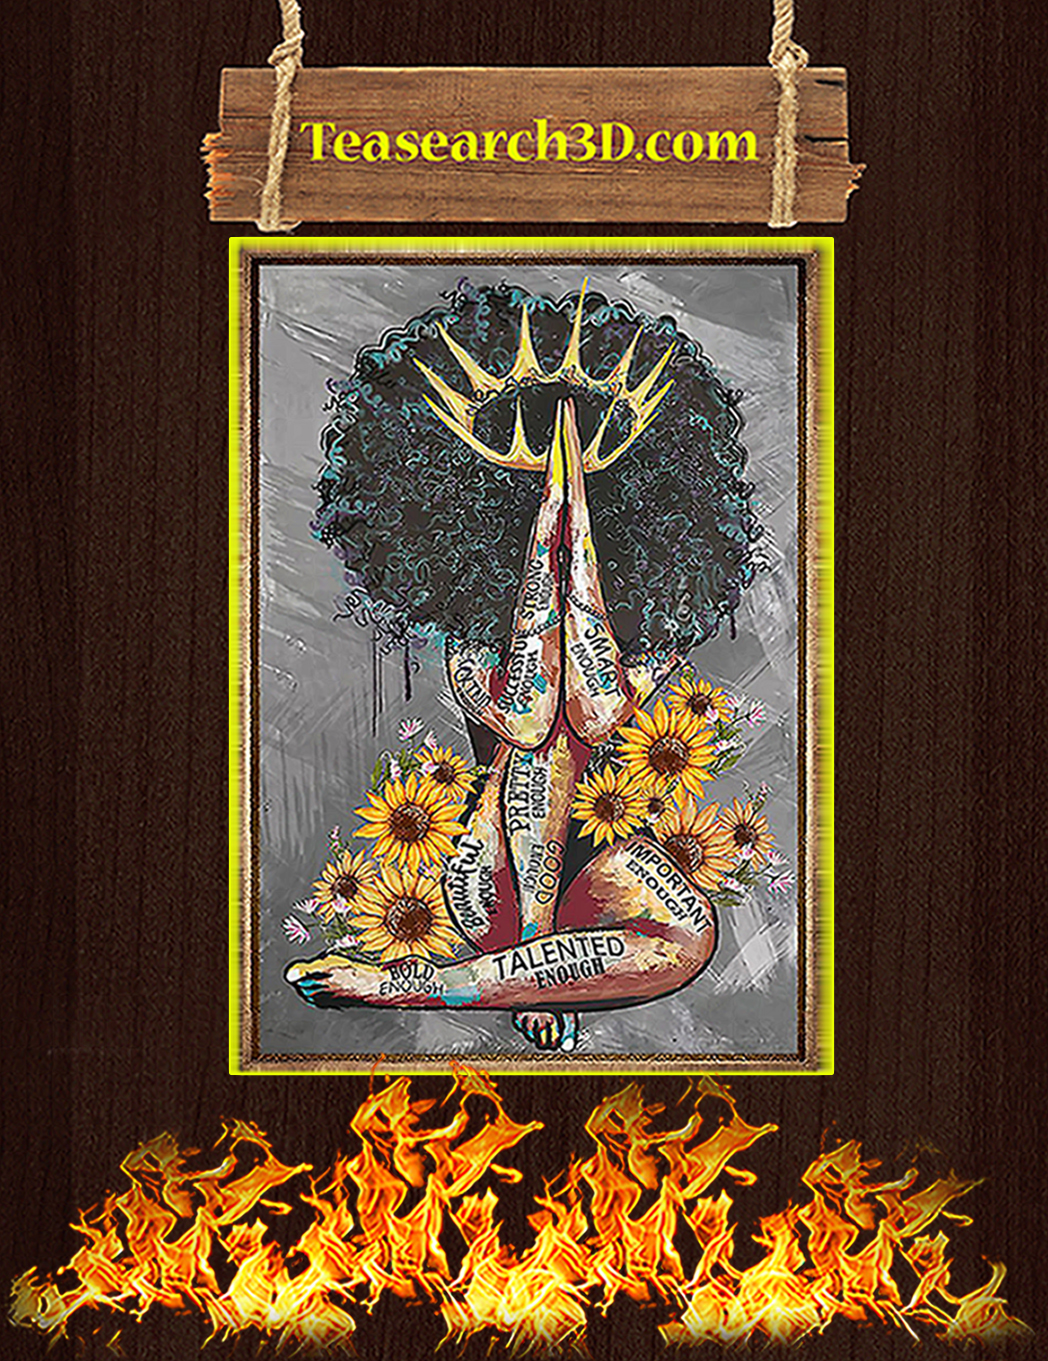 Black queen with sunflowers poster A1